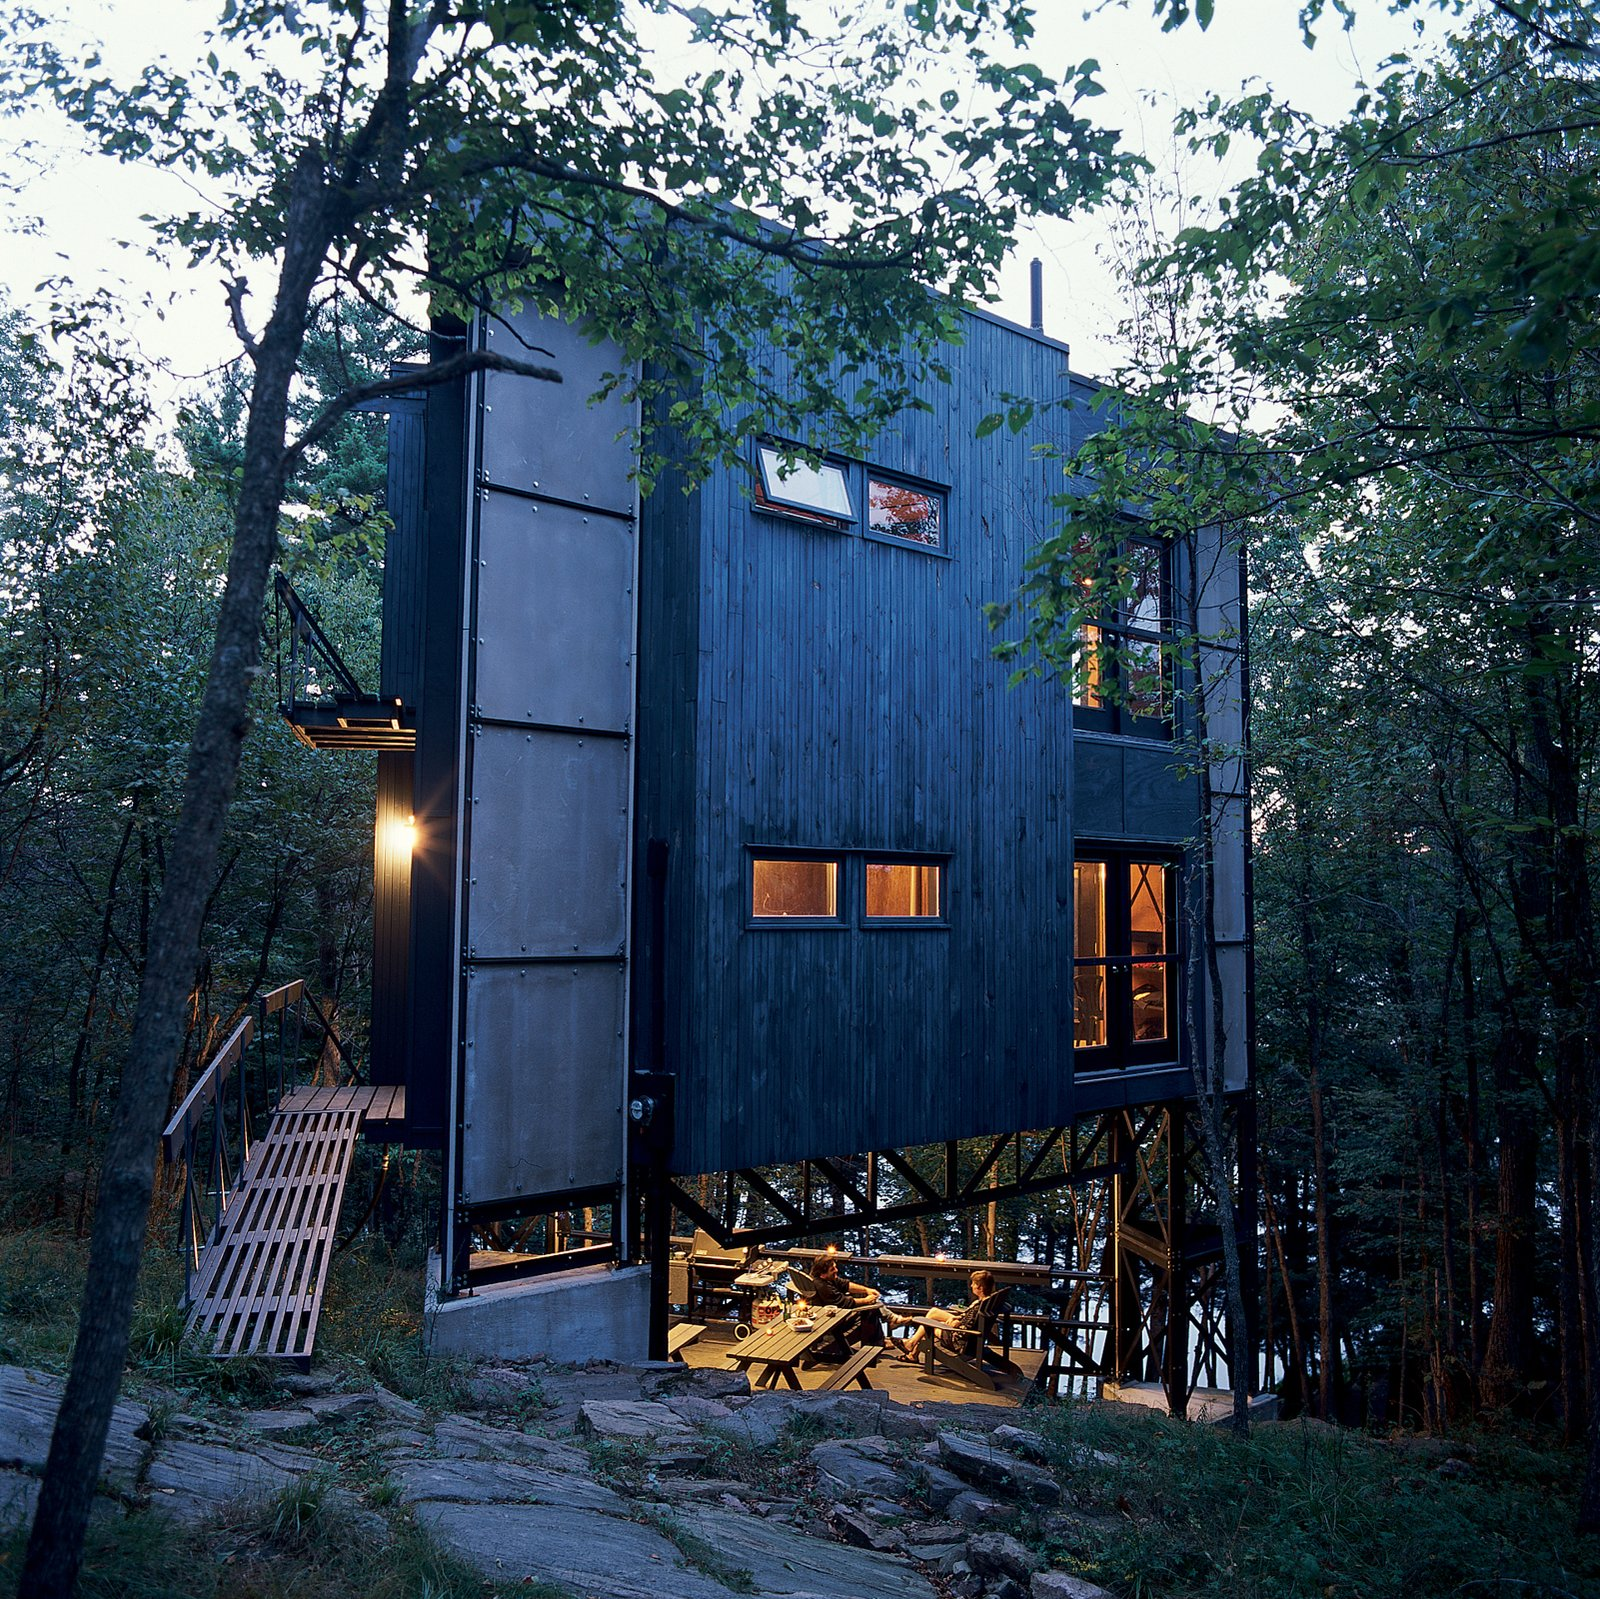 Scrap steel and reclaimed wood clad the three-story triangular tower, which hovers over a small deck and outdoor space.